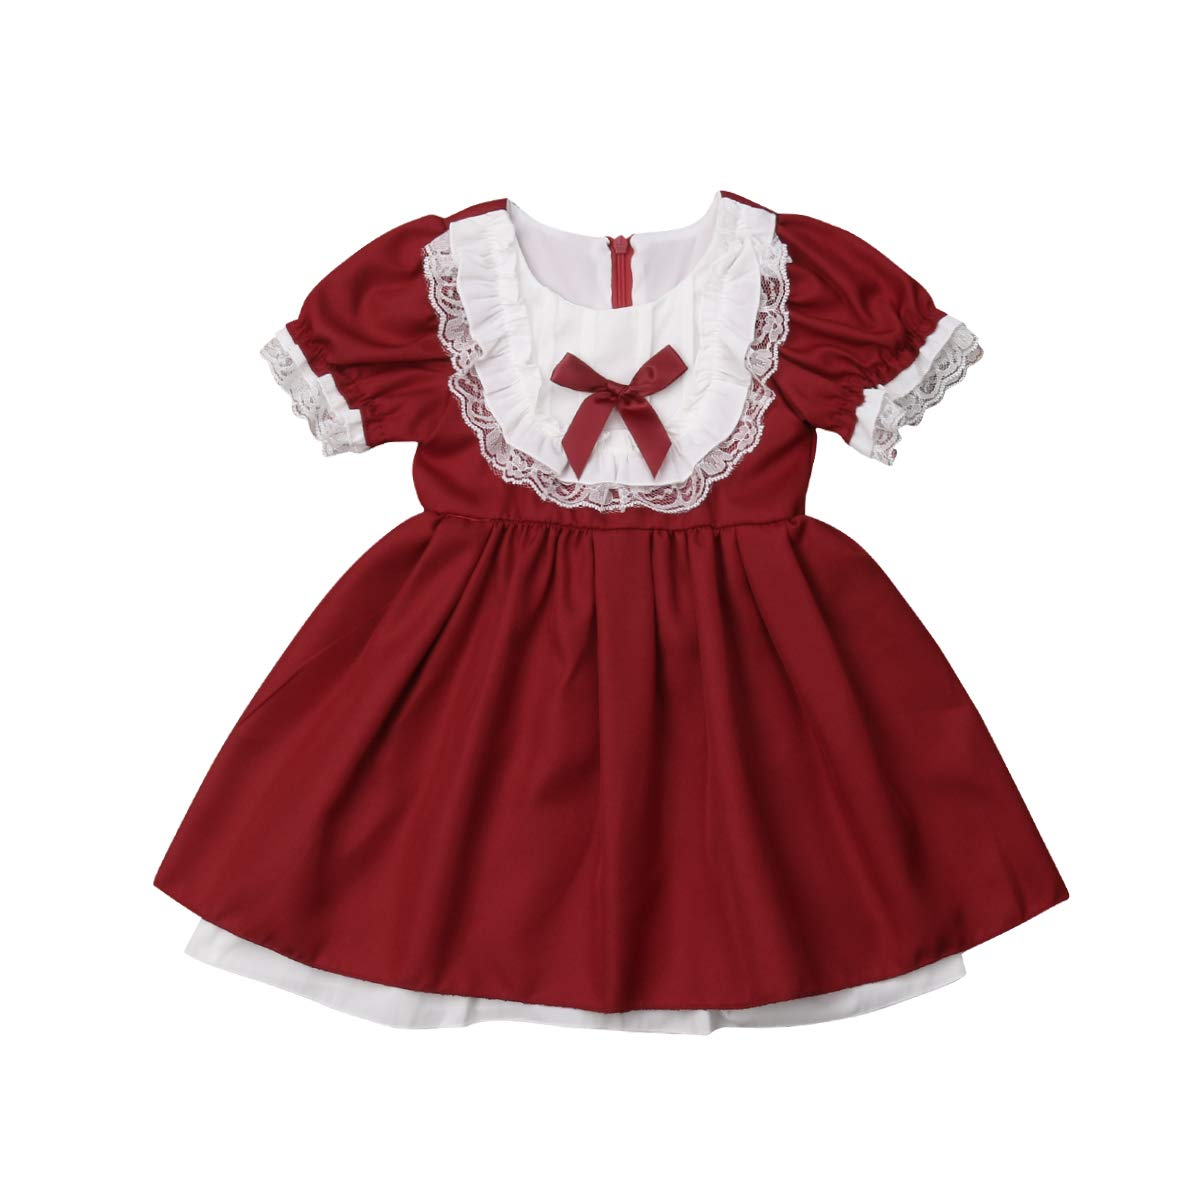 Christmas Toddler Kids Baby Girl Floral Lace Party Pageant Dress Wedding Bridesmaid Princess Formal Tutu Dress